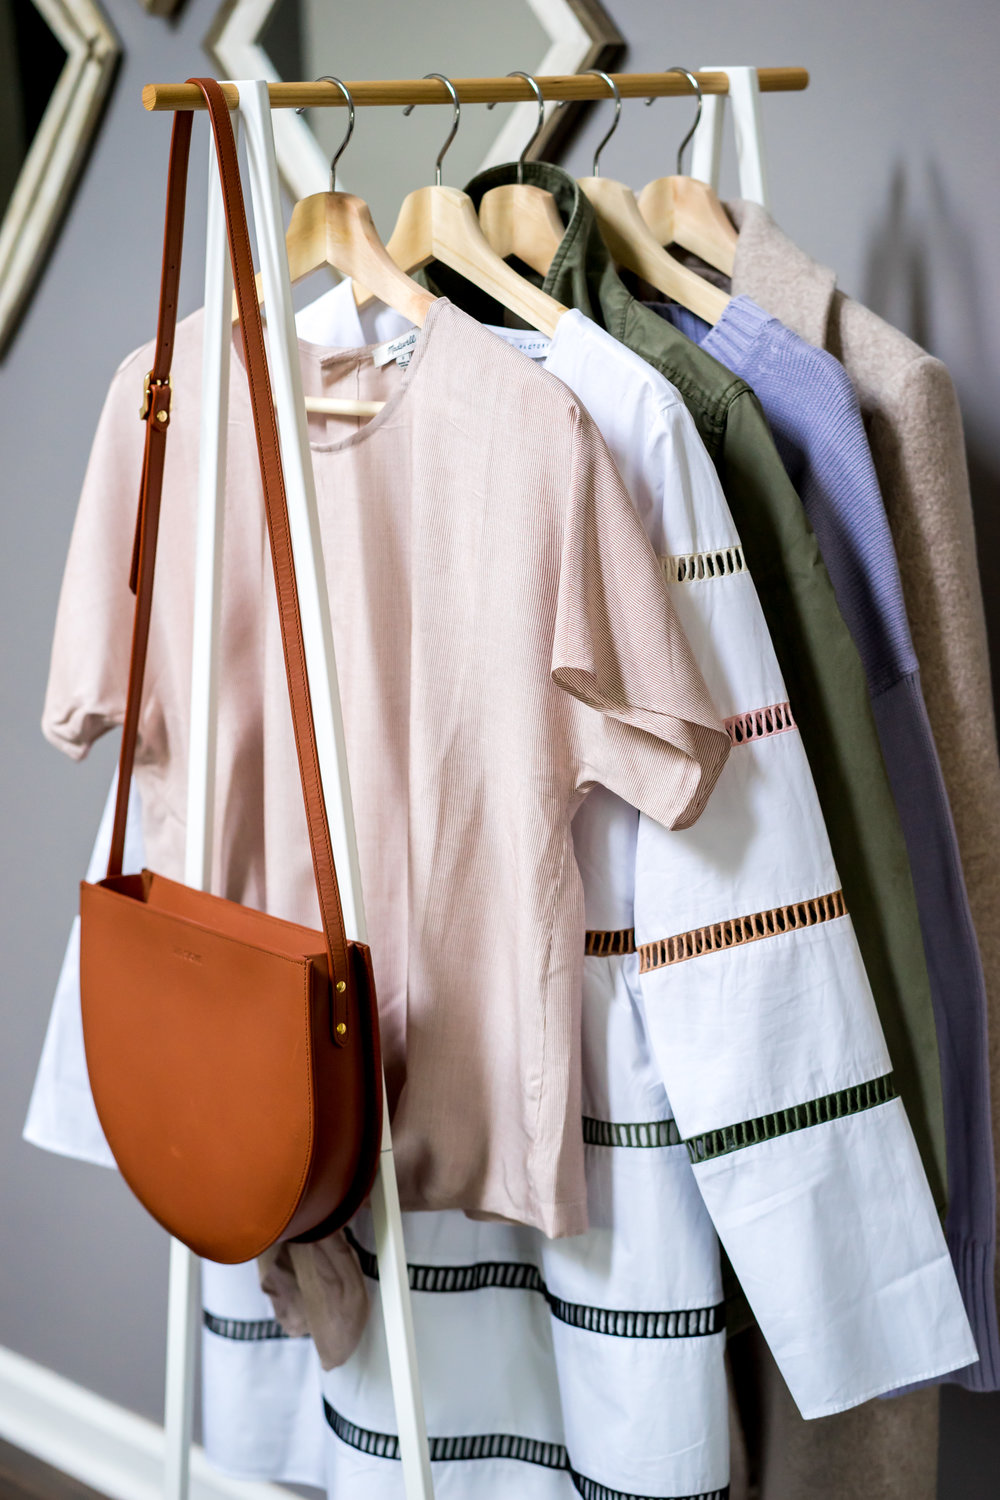 Maggie a la Mode Labor Day Sales 2018 - The Stowe Eloise Shoulder Bag, Madewell Button-Back Tie Tee in Stripe, English Factory A-Line Striped Dress, Madewell Fleet Jacket, Everlane The Soft Cotton Square Crew, Theory Clairene Hawthorne Wool Cashmere Coat